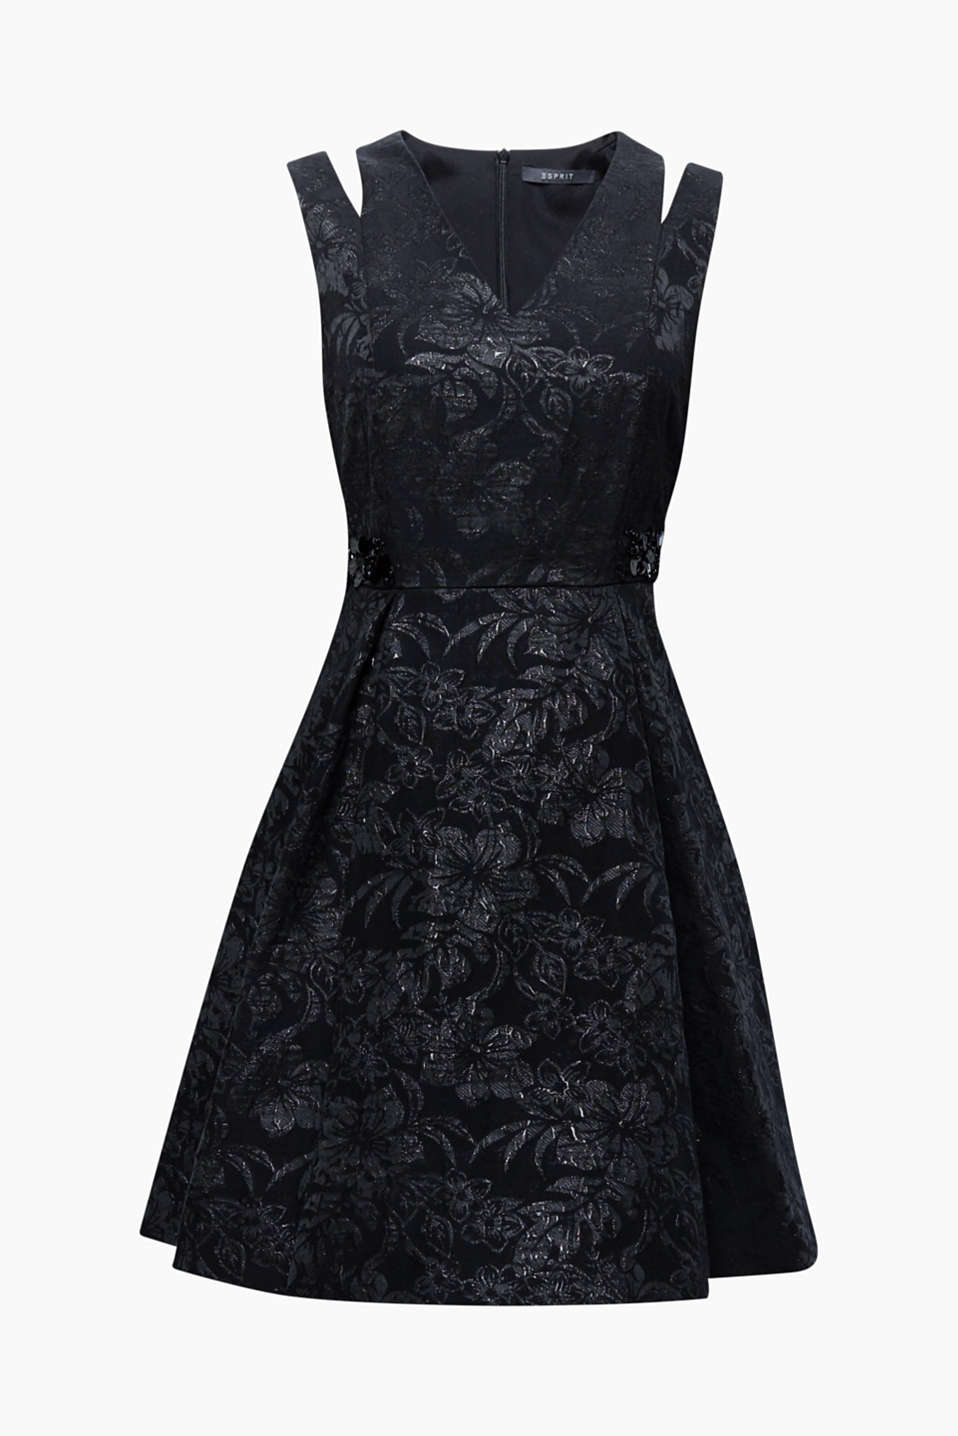 This exciting dress features a floral jacquard pattern, cut-outs on the shoulders and an embellished waistline!